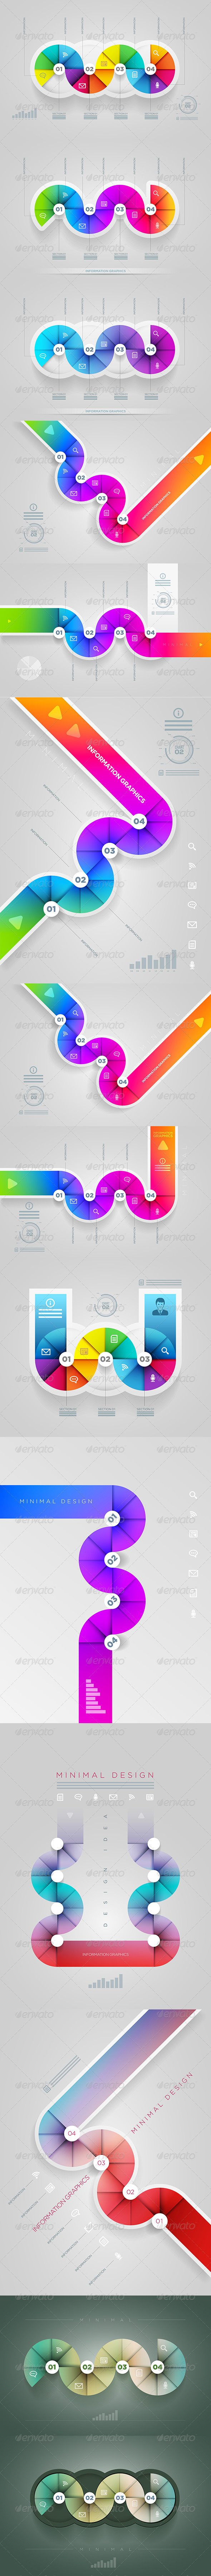 Infographic Design Template - Infographics